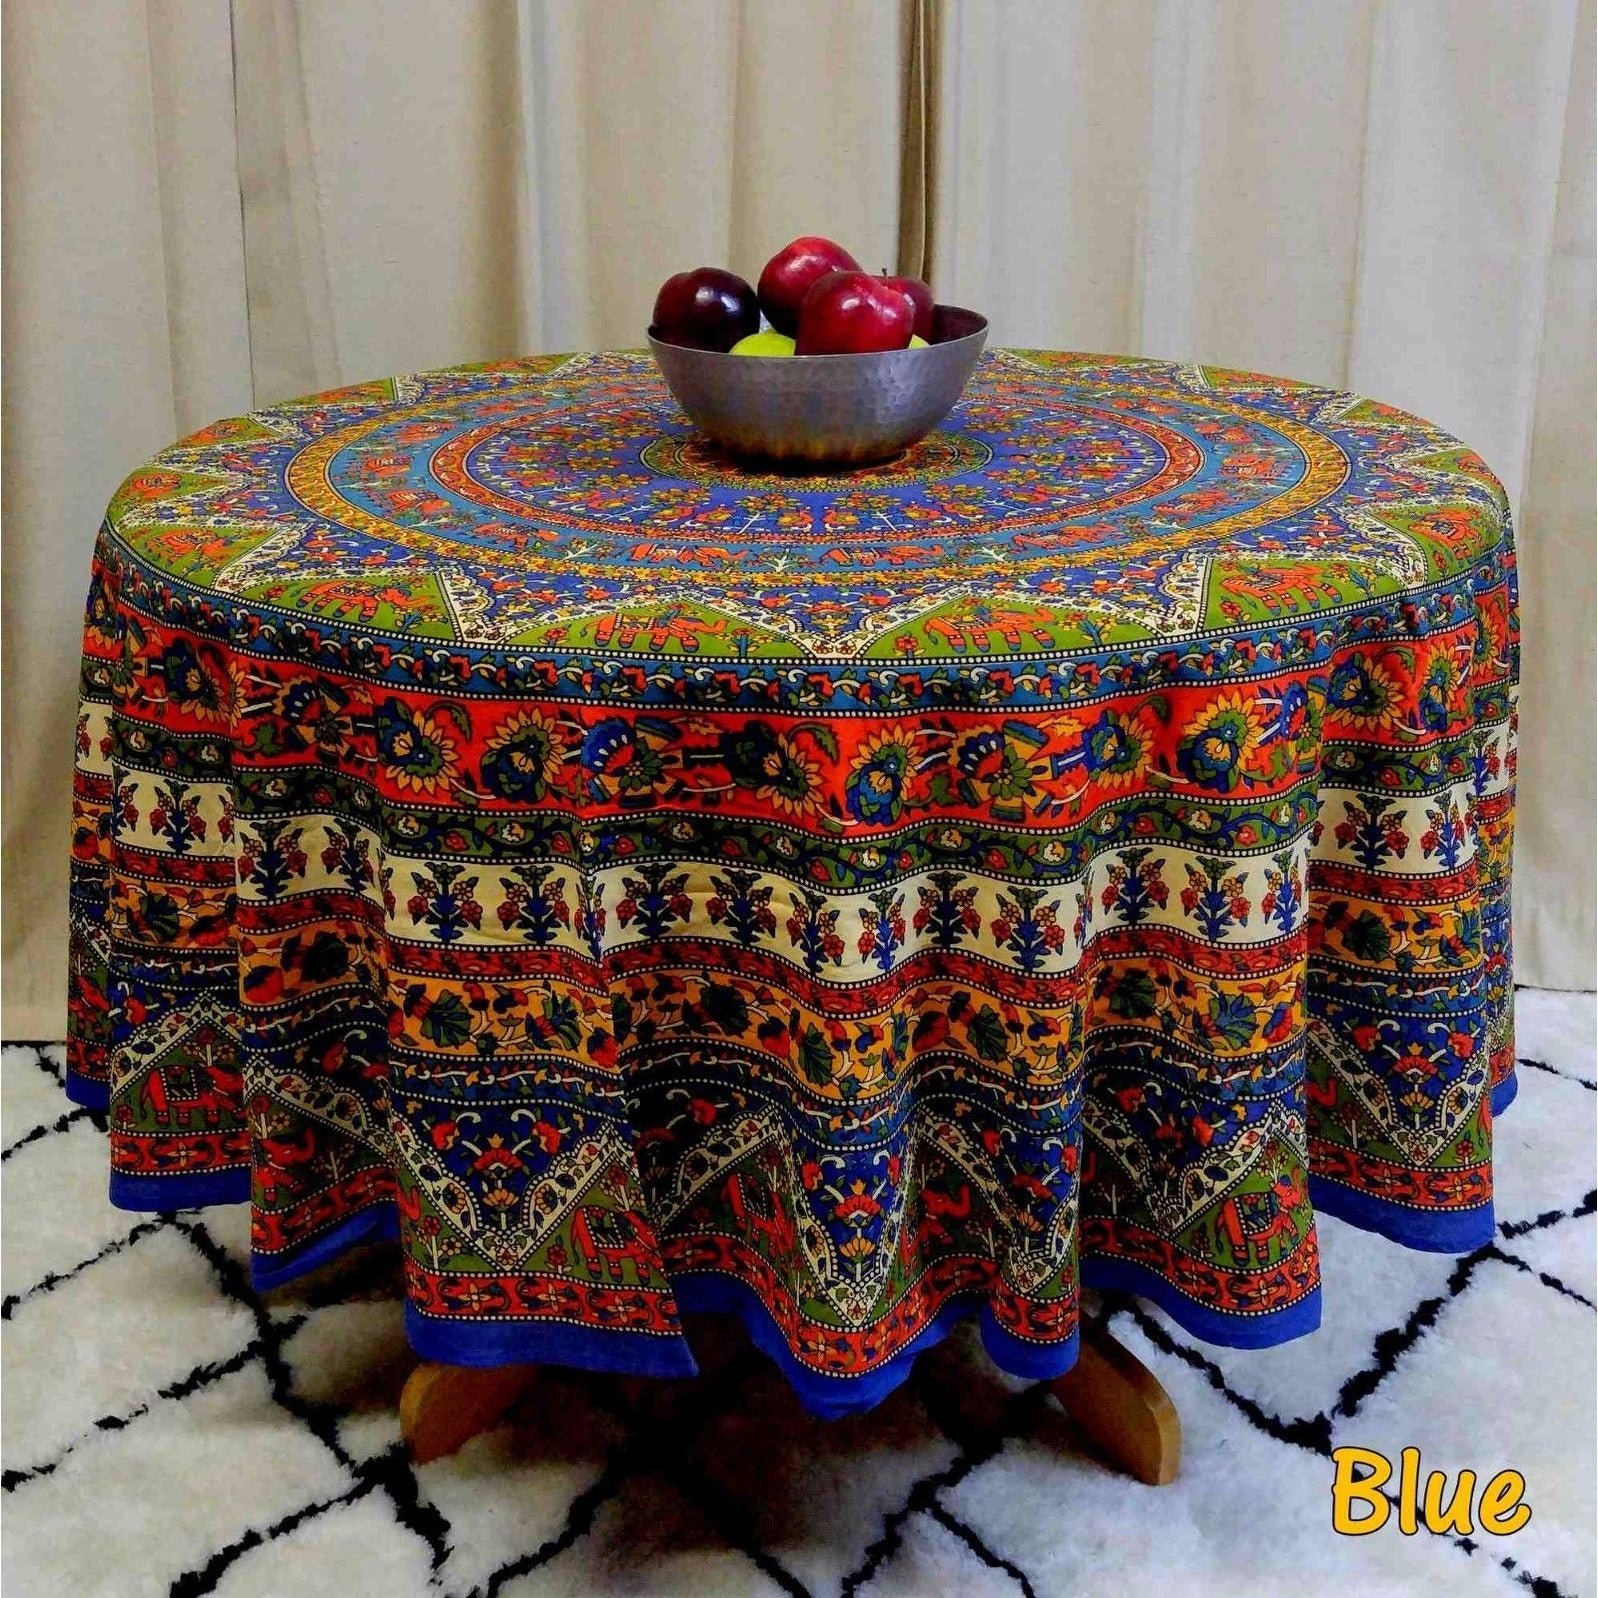 "Handmade Mandala Floral and Elephant Printed Cotton Tablecloth available in Red Blue & Brown in two sizes 76"" Round & 90"" Round - Thumbnail 12"